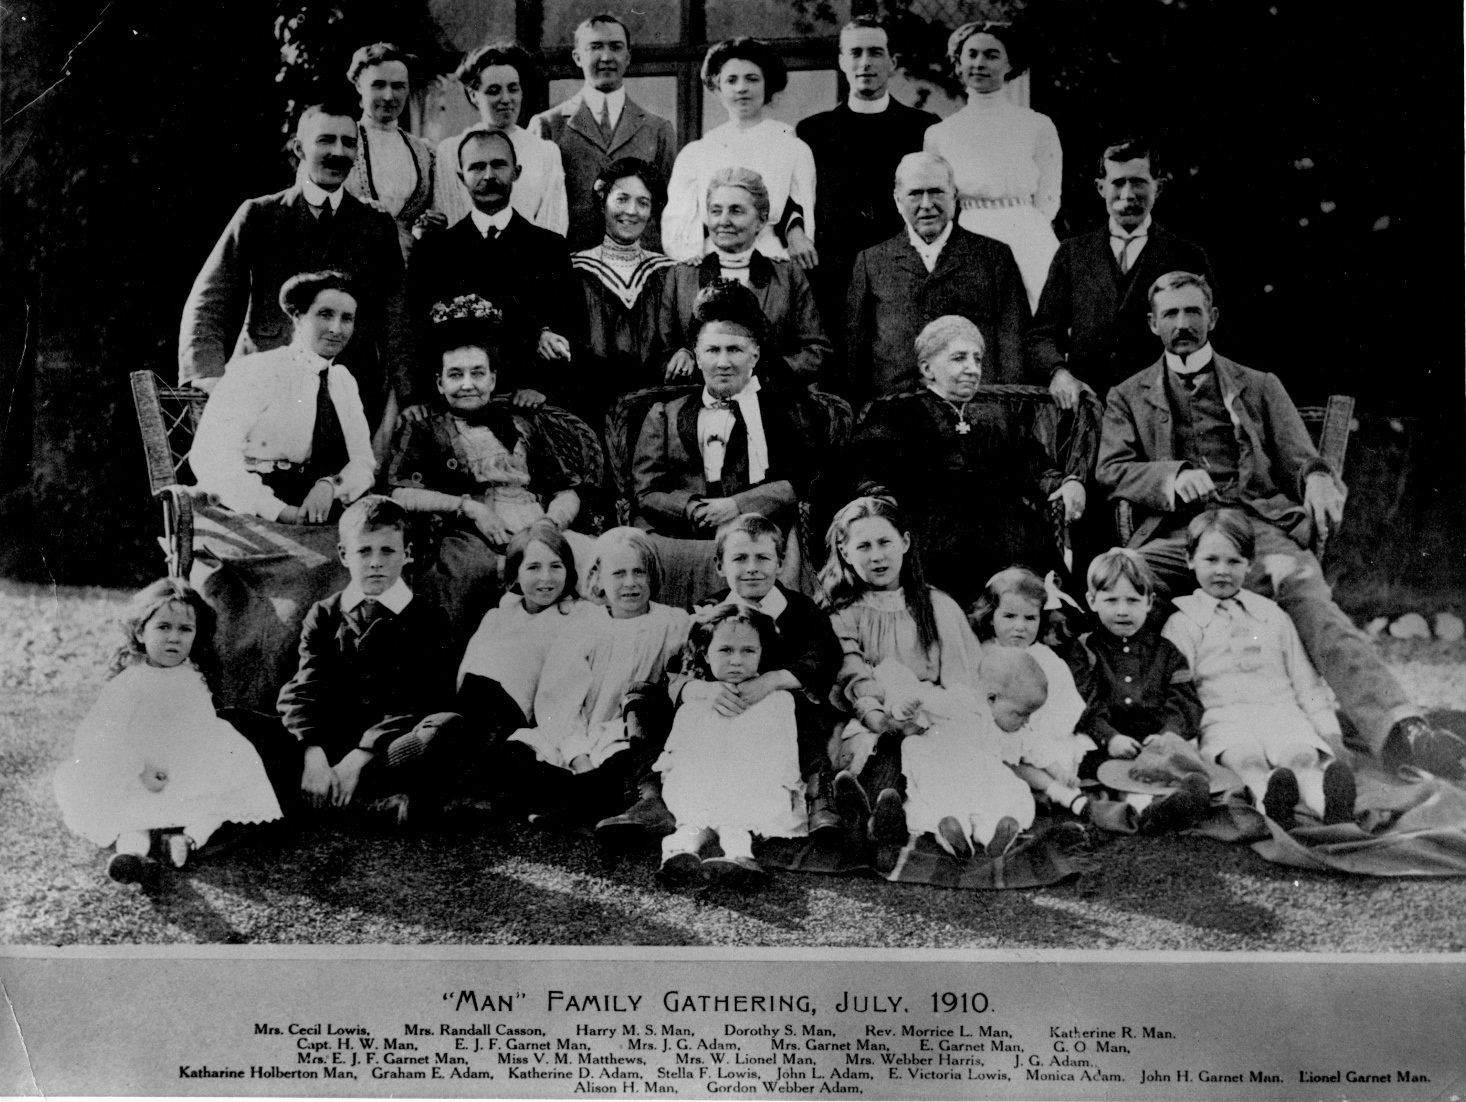 1910 Man Family Gathering 150 dpi